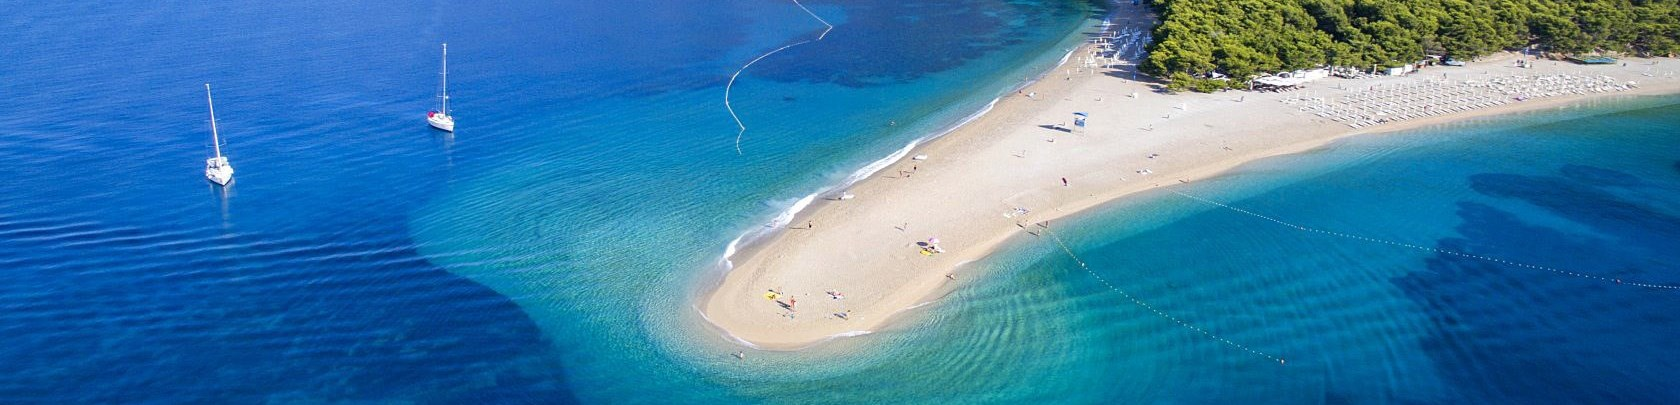 Spring holiday at the best beach - Zlatni rat!